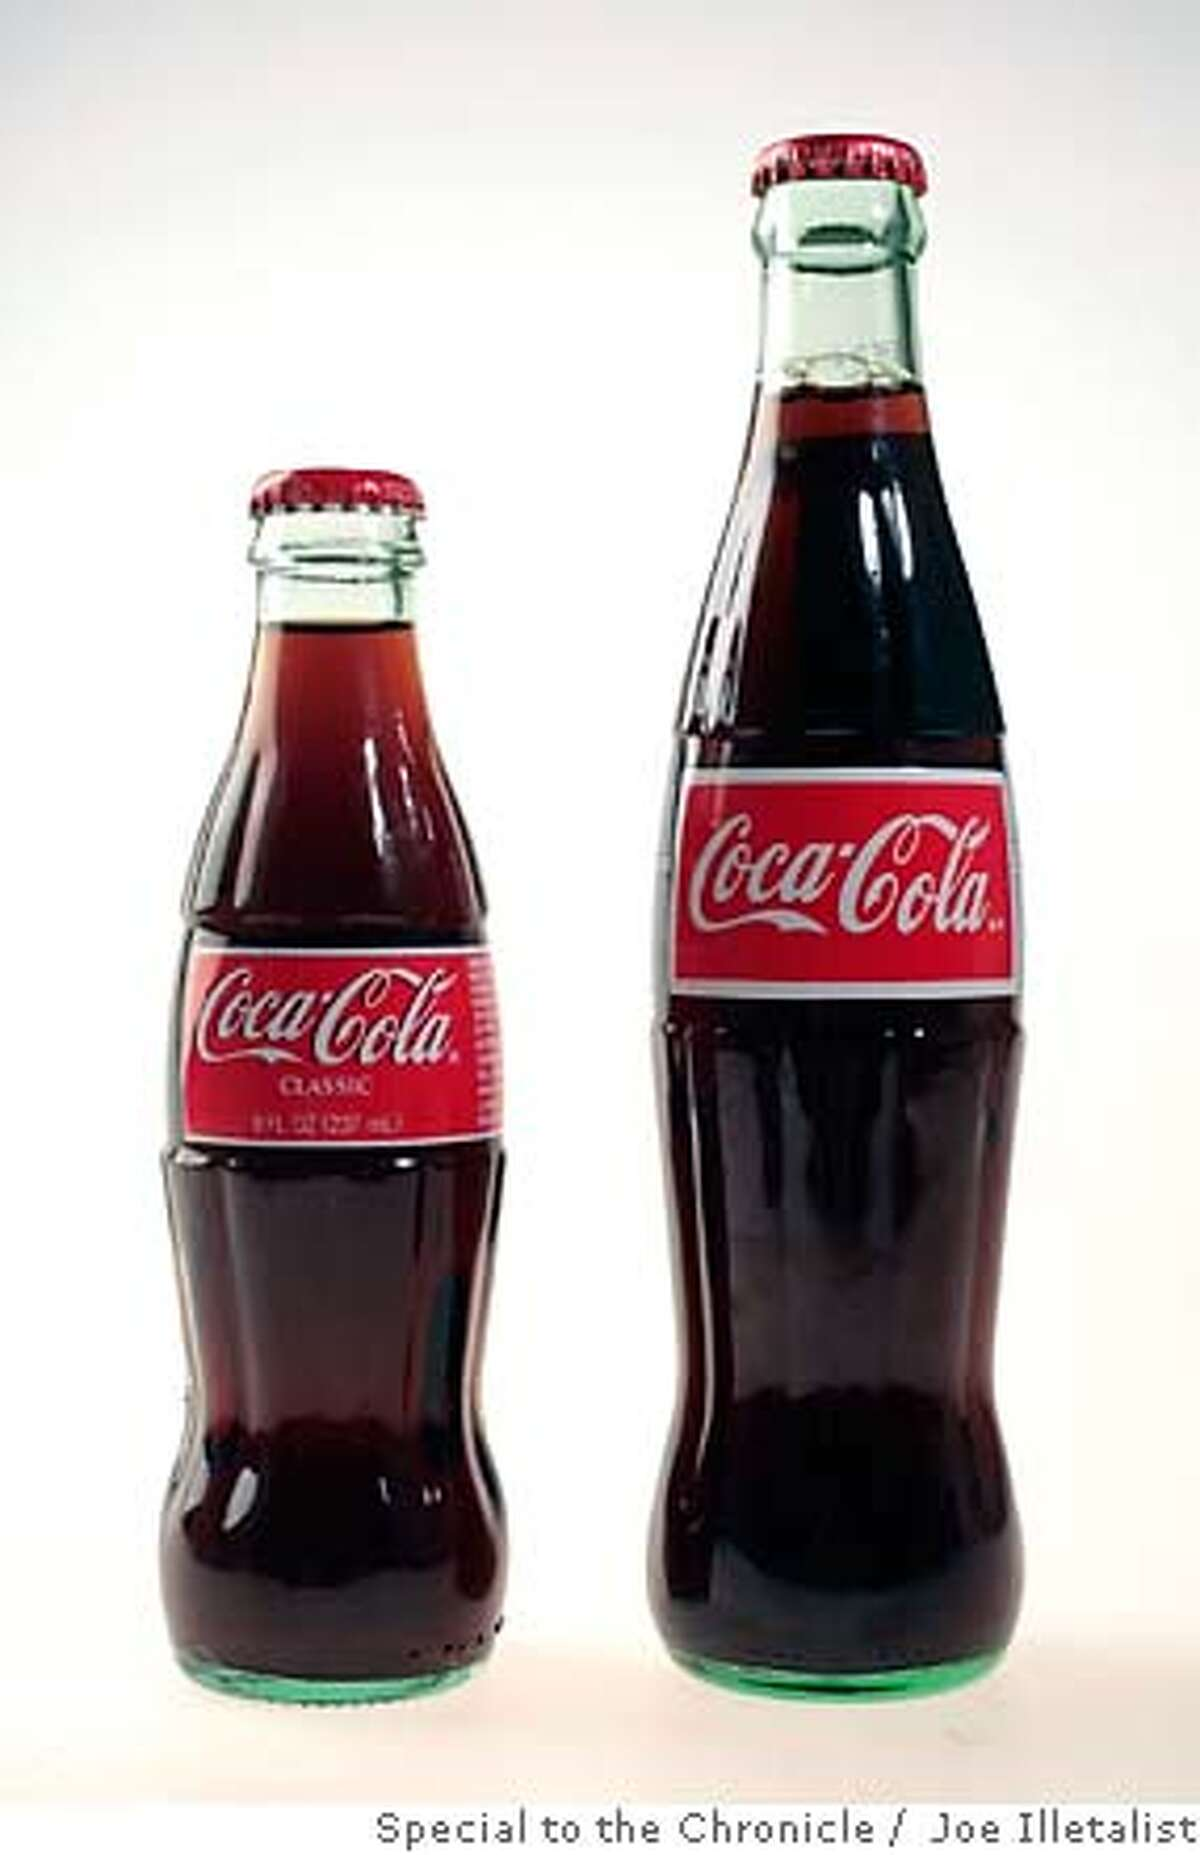 WHATS30_COKE_04_JOHNLEE.JPG Mexican and American Coke bottles. By JOHN LEE/SPECIAL TO THE CHRONICLE